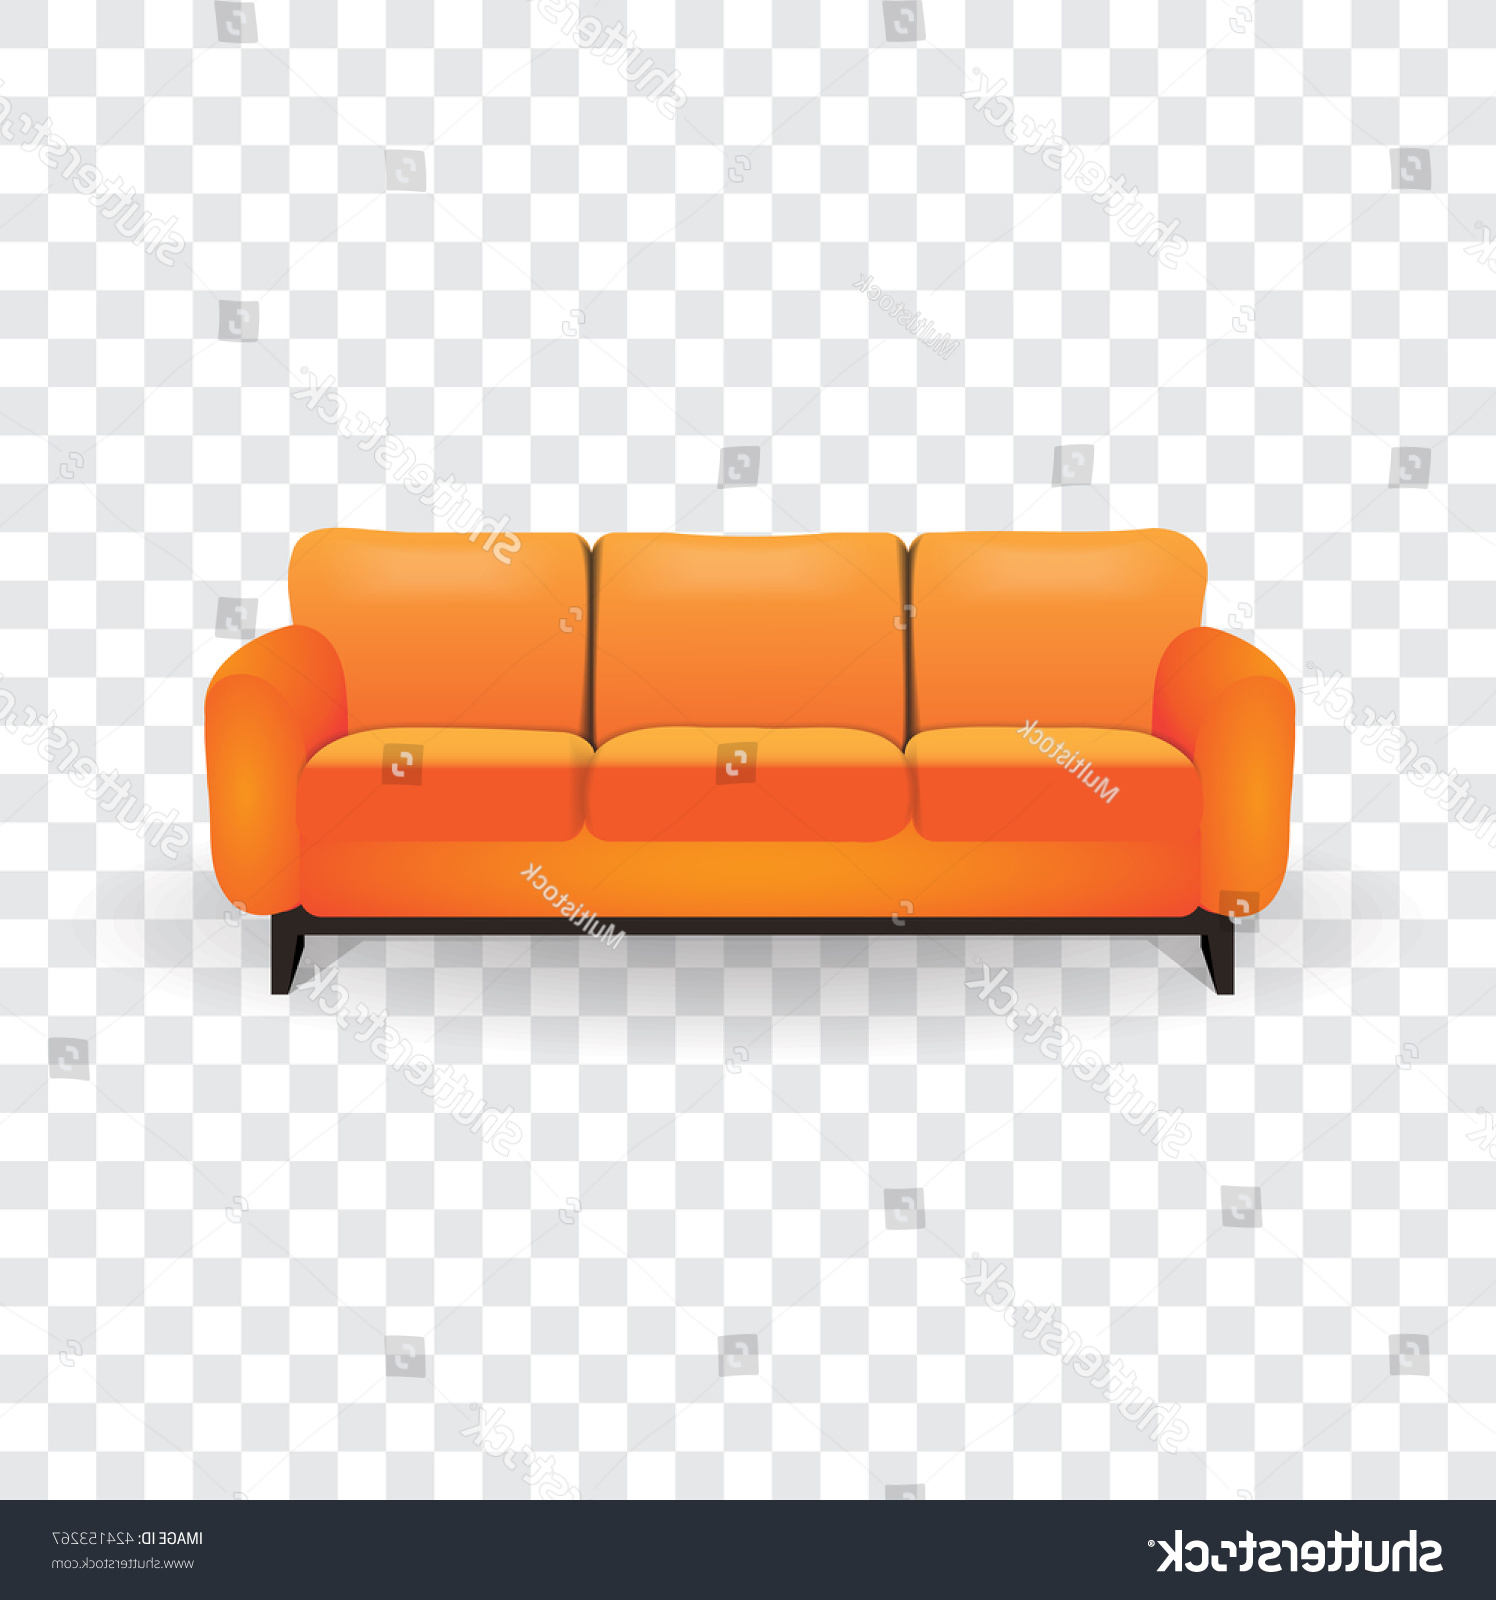 Well Known Sofa Furniture Orange Color Stock Vector (royalty Free) 424153267 For Orange Sofa Chairs (View 16 of 20)